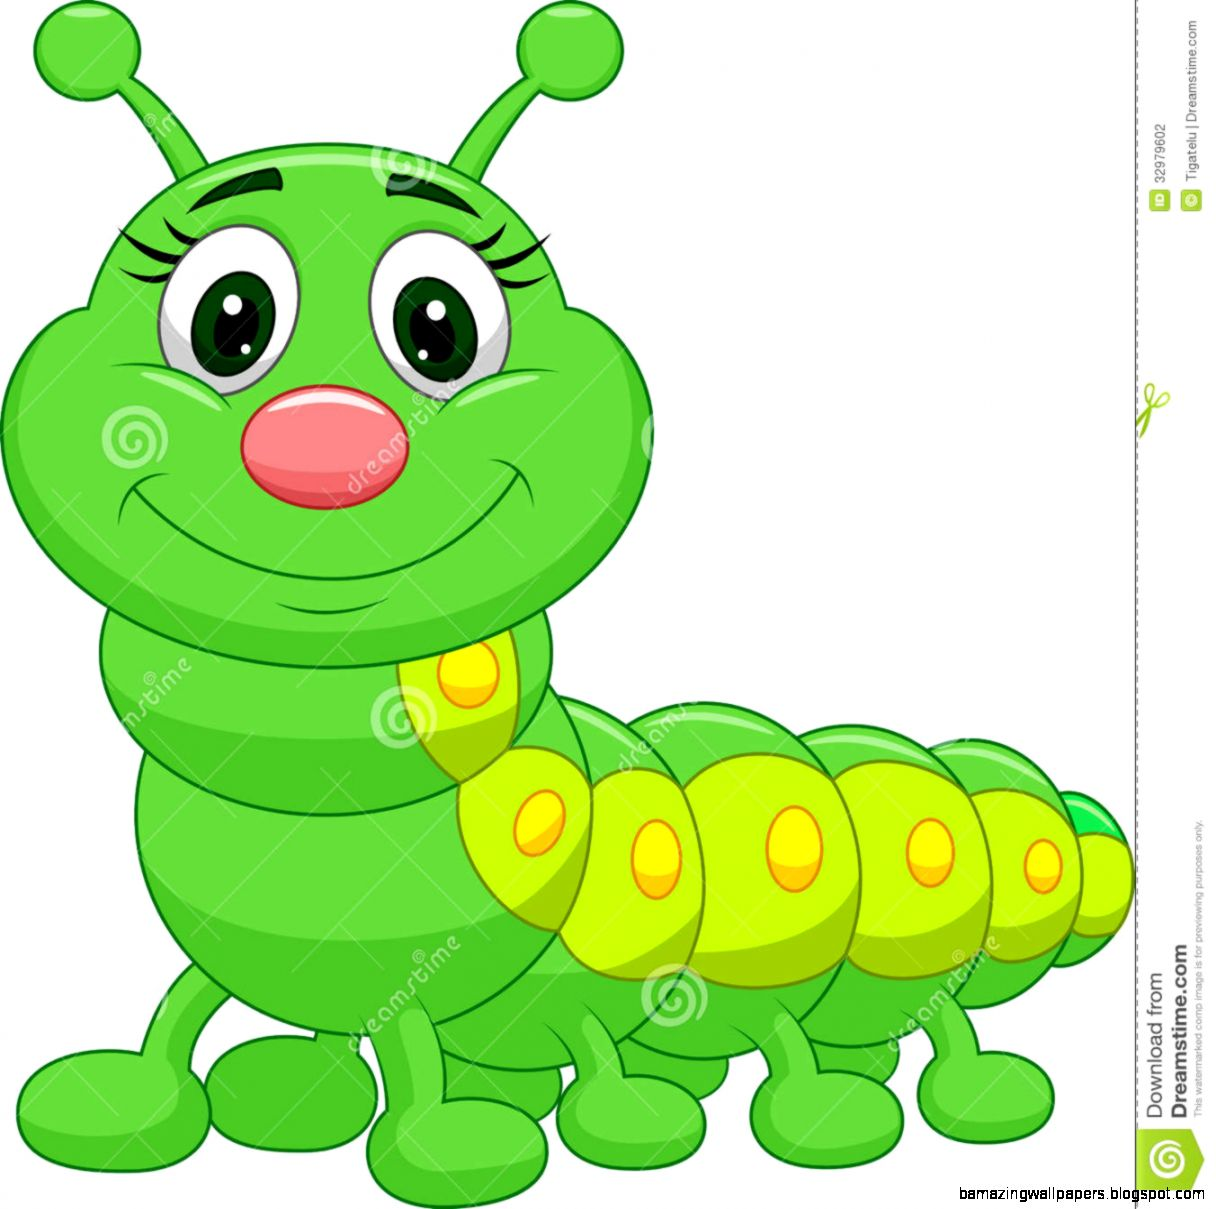 Images free download best. Worm clipart cute